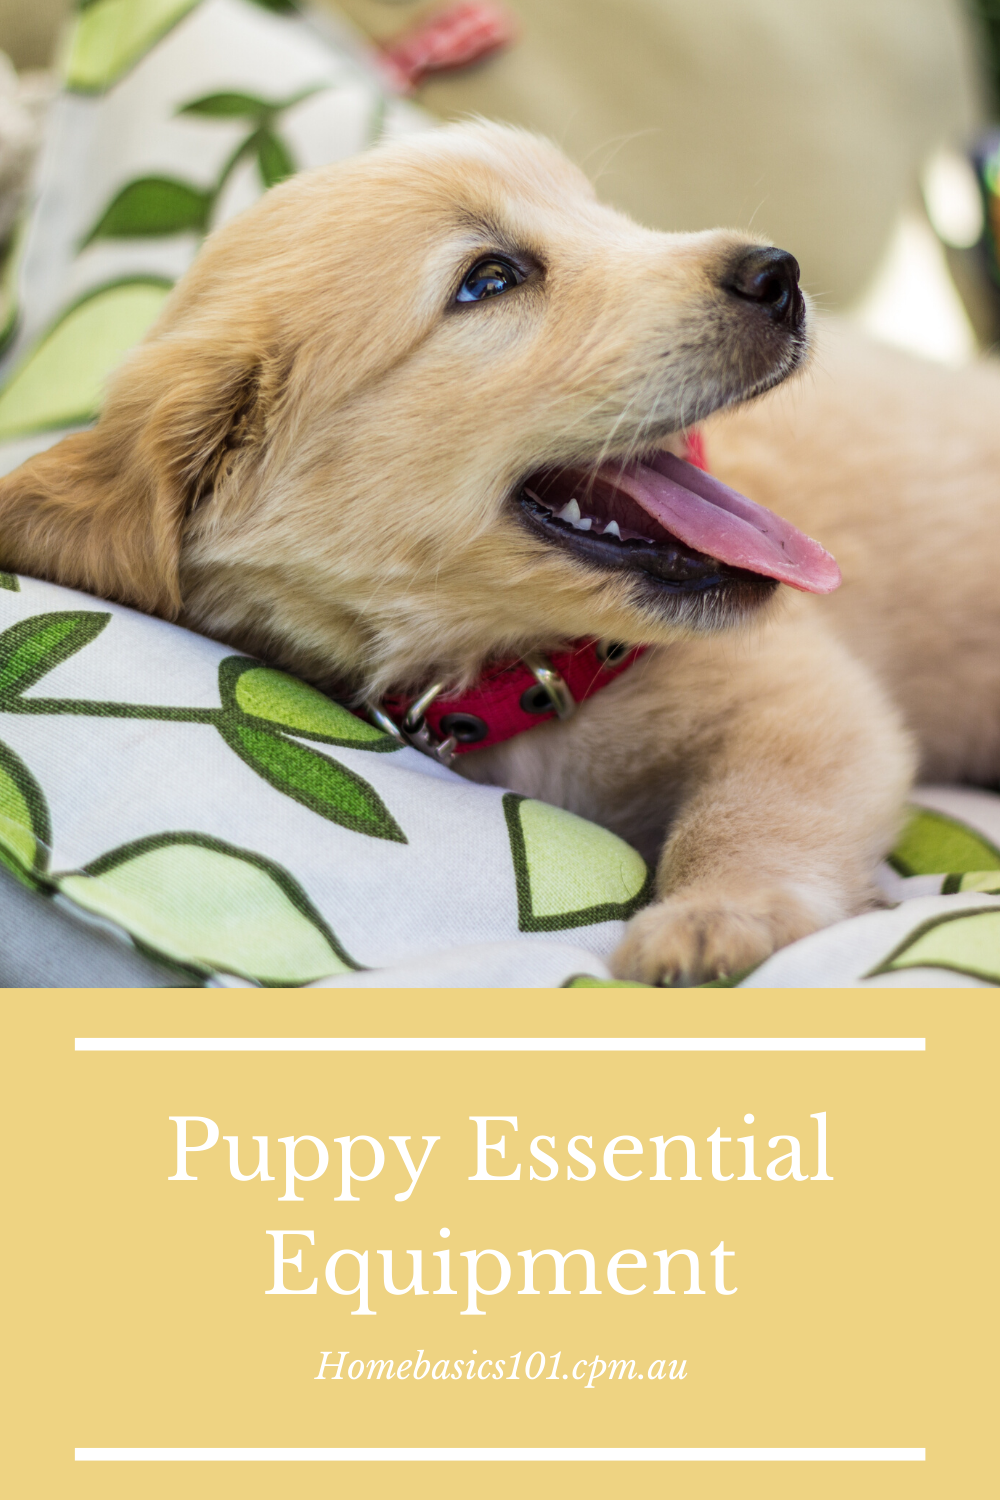 Learn the only Equipment you need for your puppy